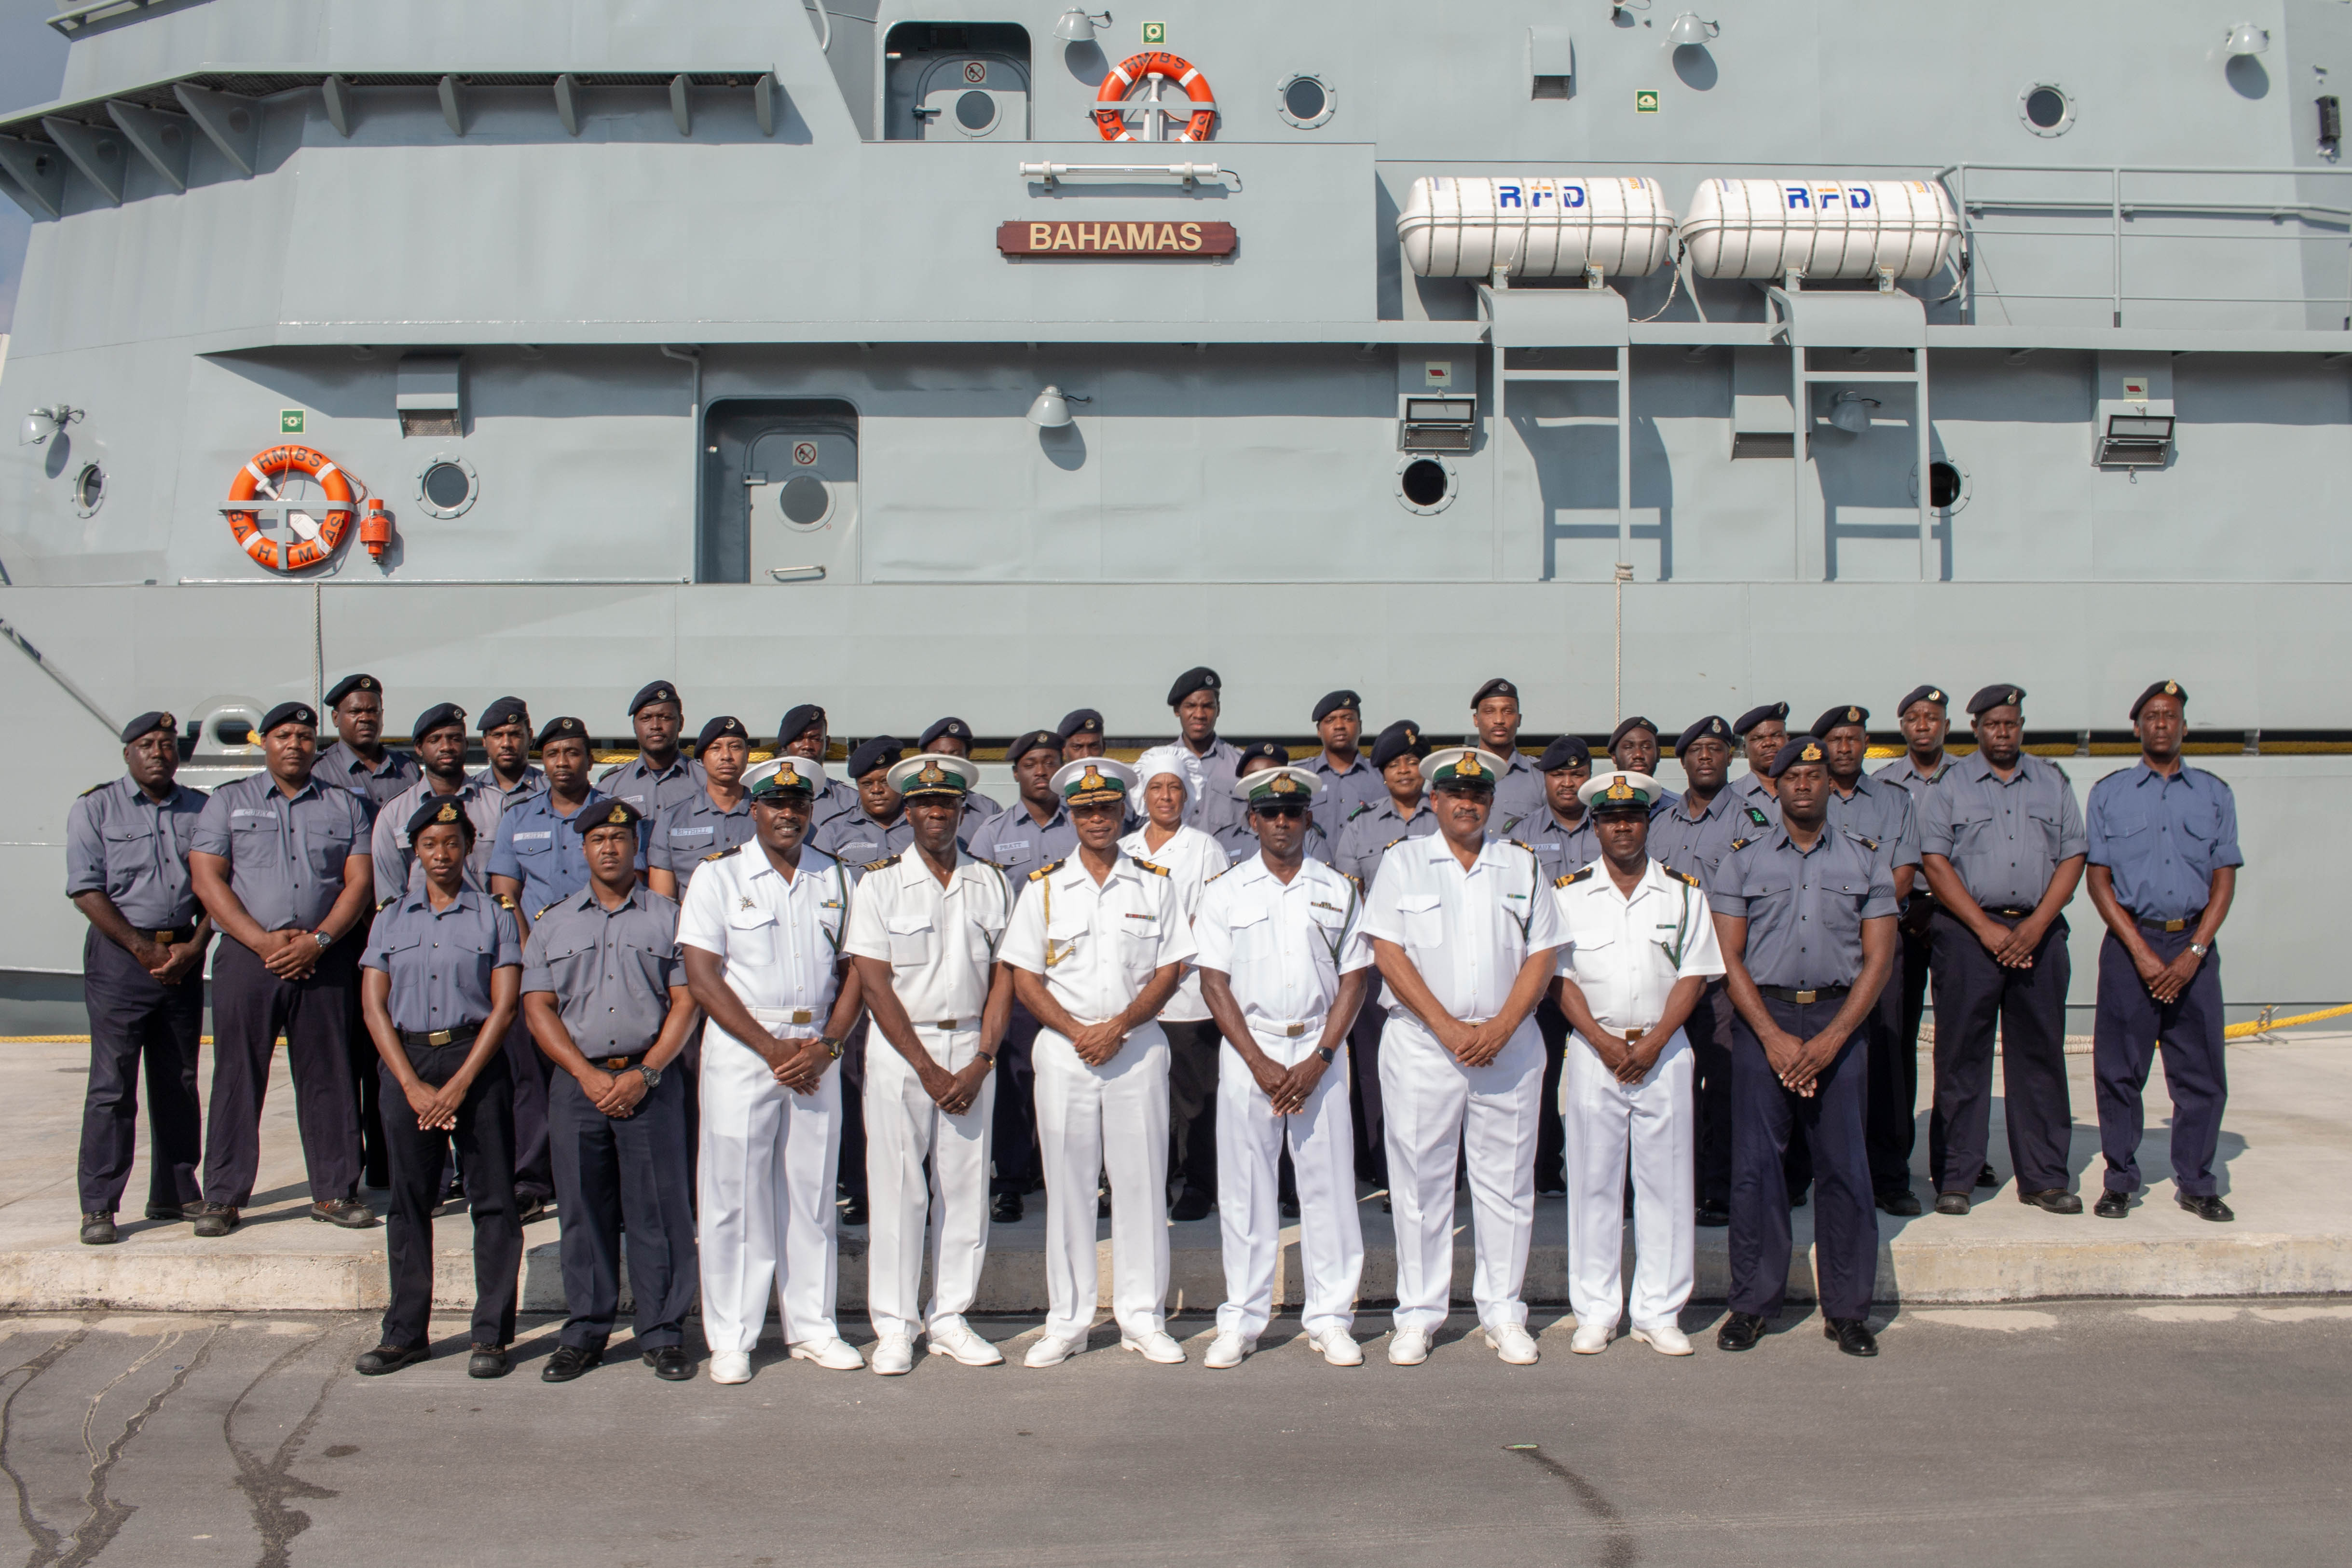 HMBS Bahamas arrives from the Netherlands